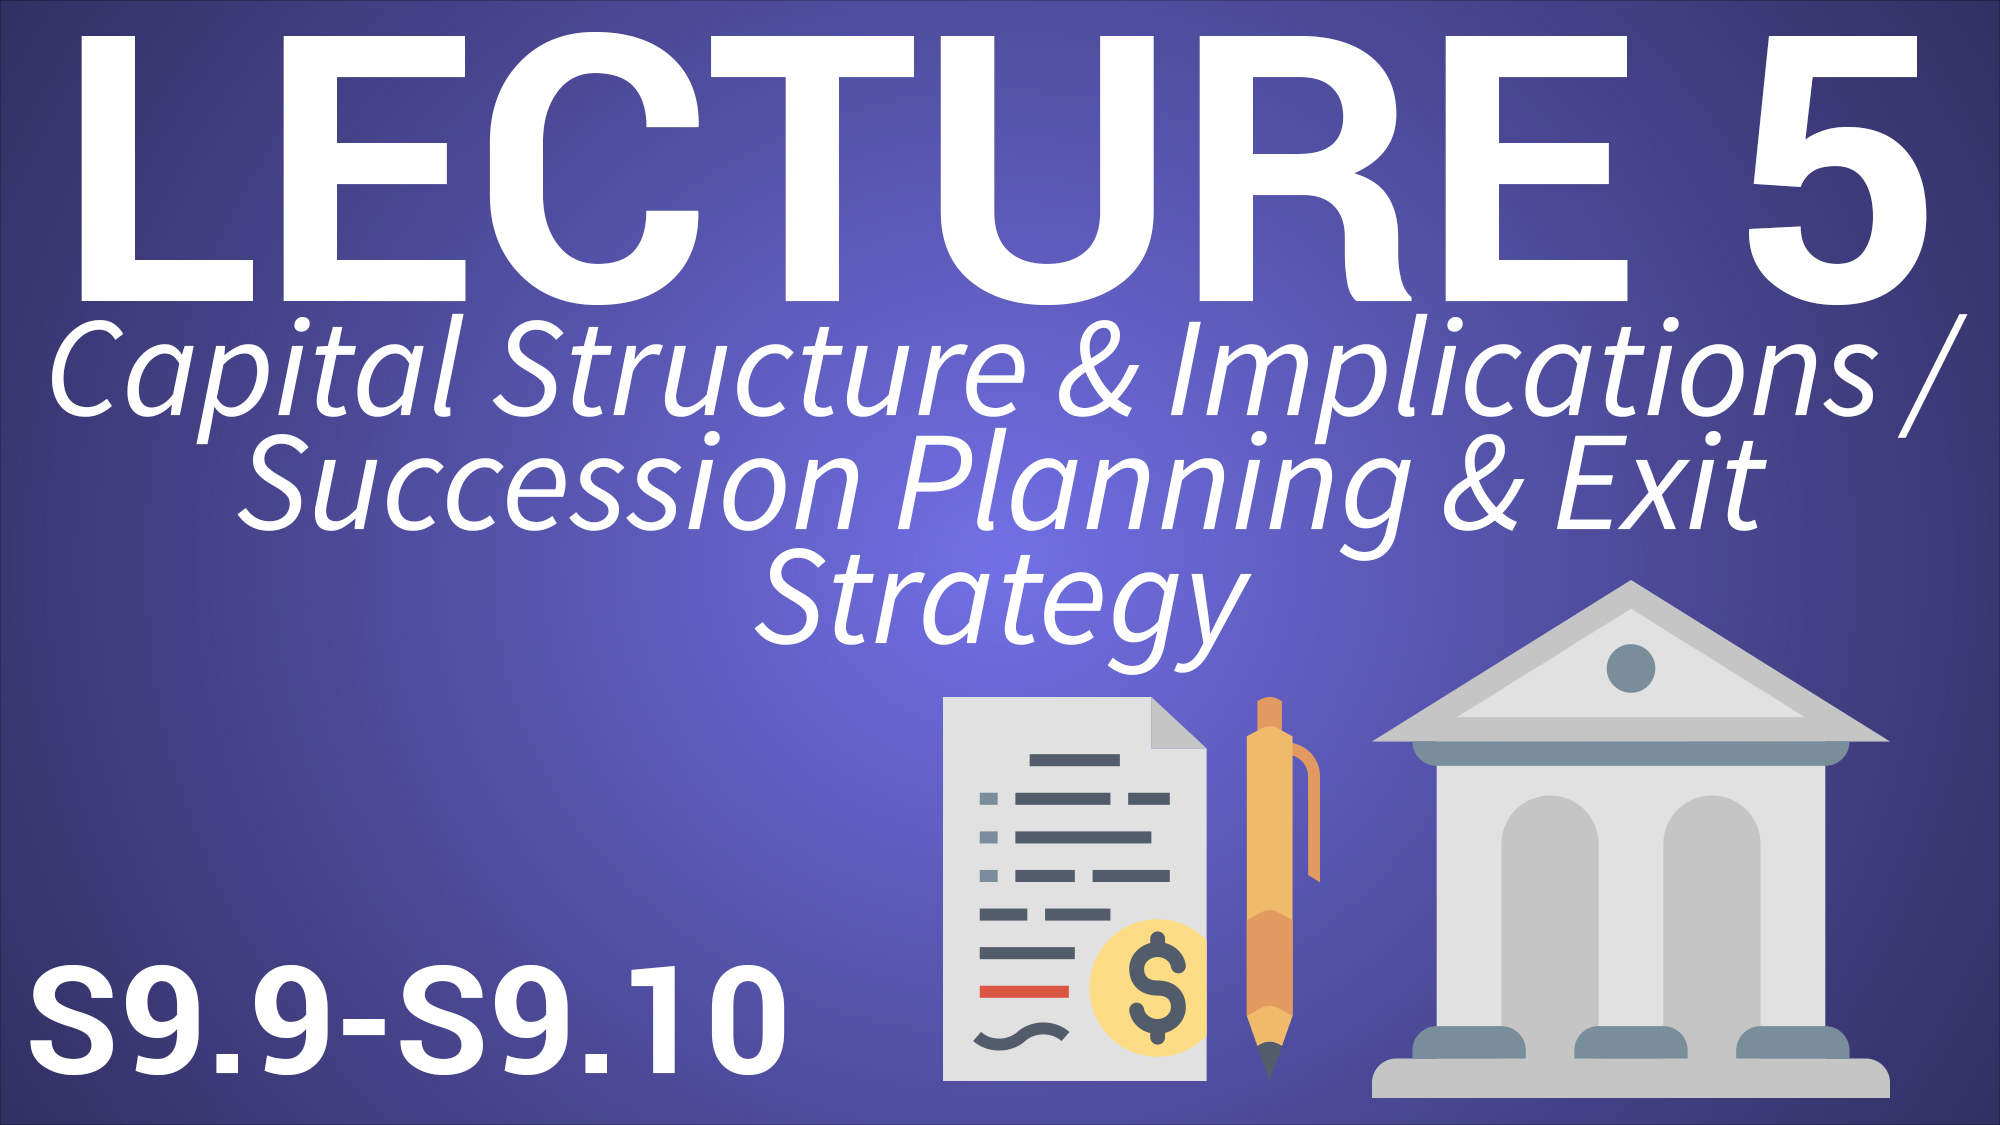 Entrepreneurship & Innovation Management - Lecture 5: Capital Structure and Implications/Succession Planning & Exit Strategy